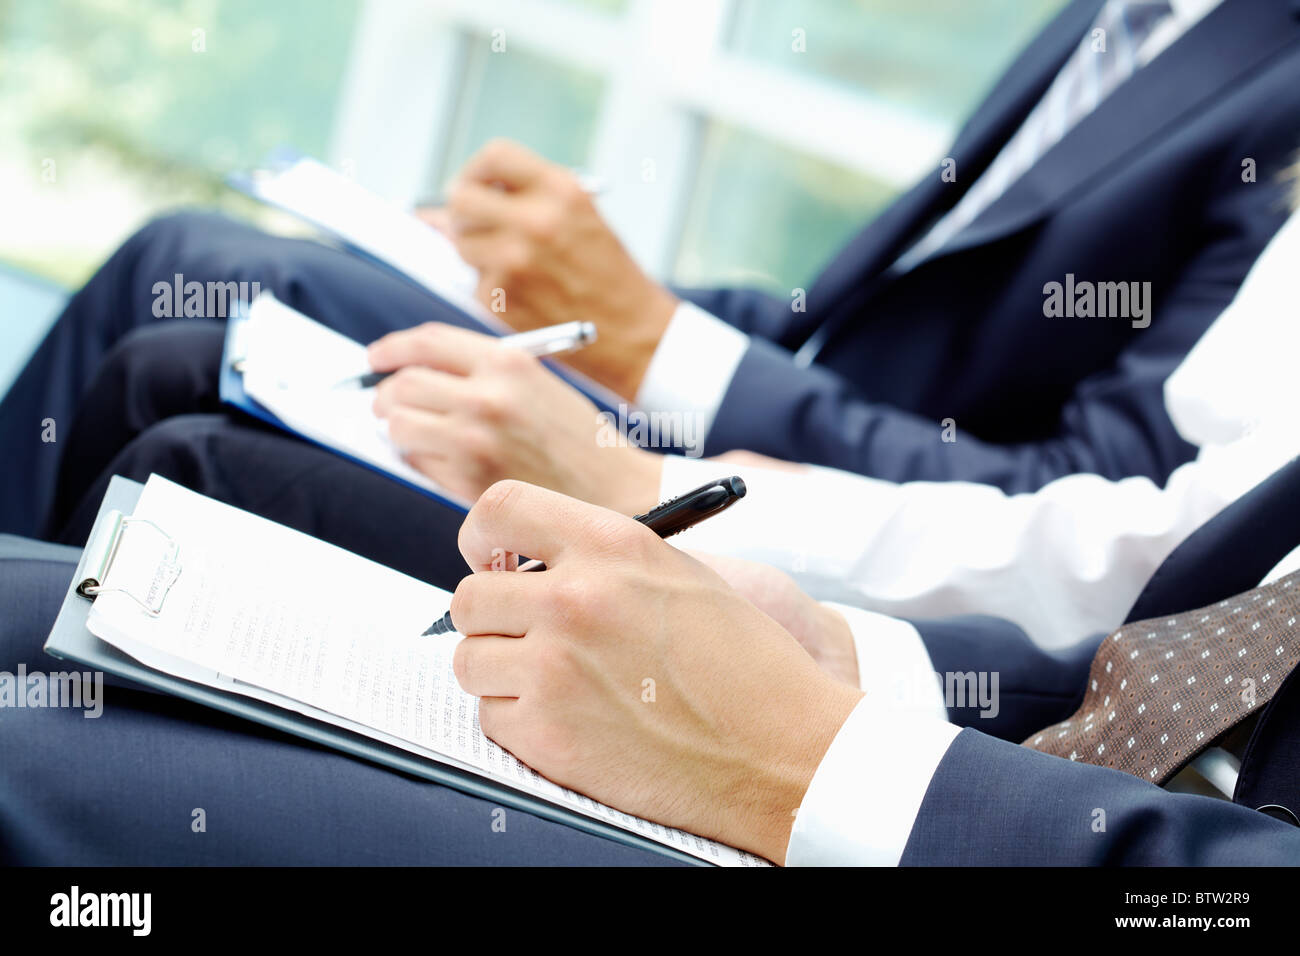 Close-up of business people hands with document writing at lecture - Stock Image